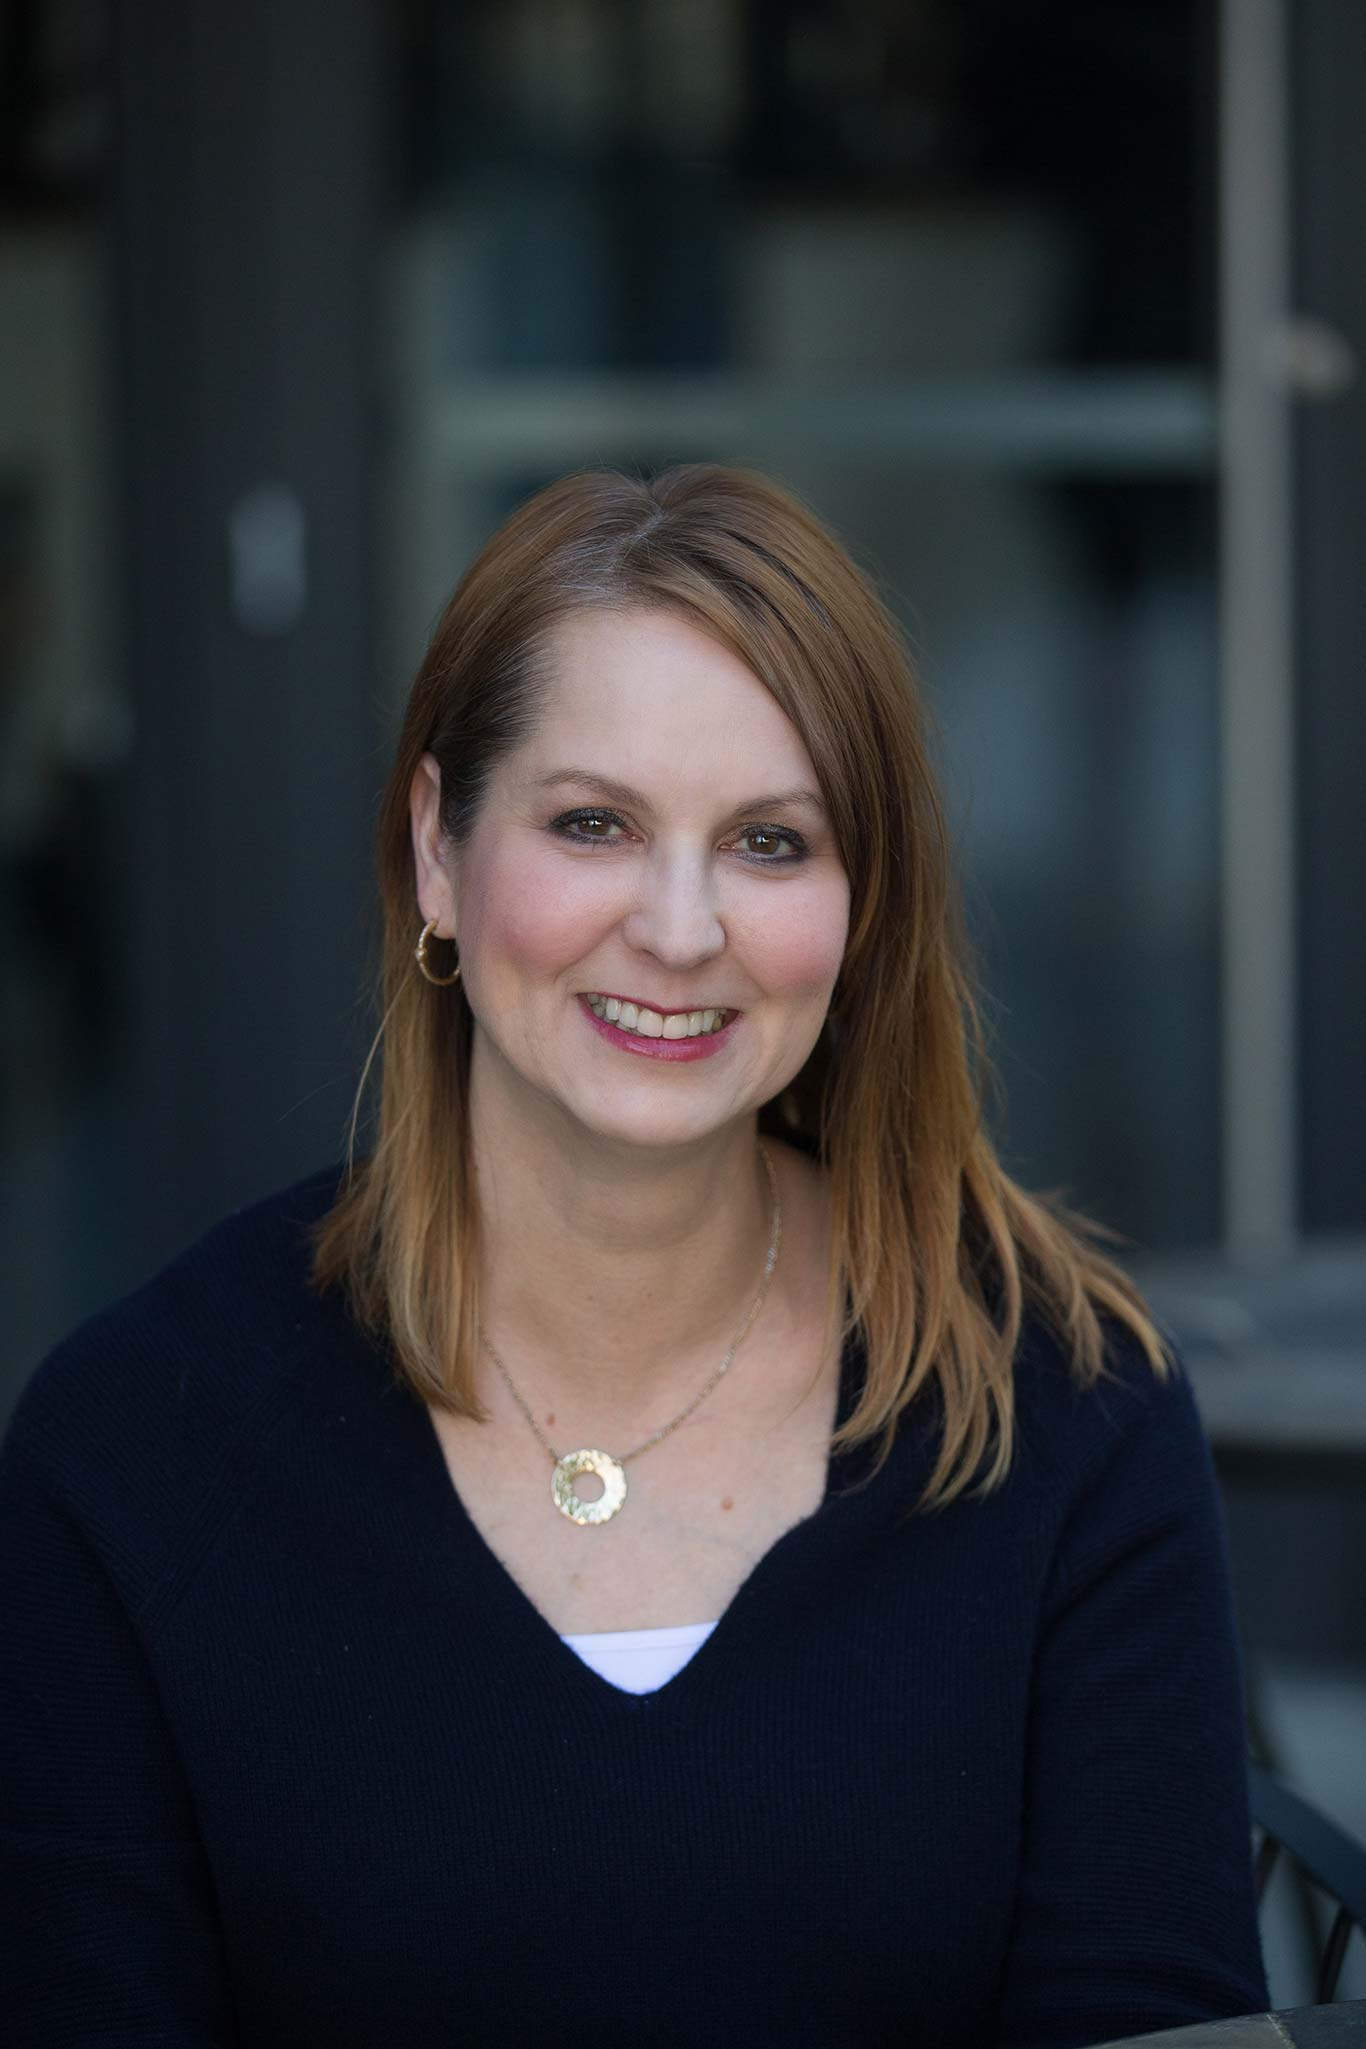 Lisa Lindberg, Vice President of Product Management